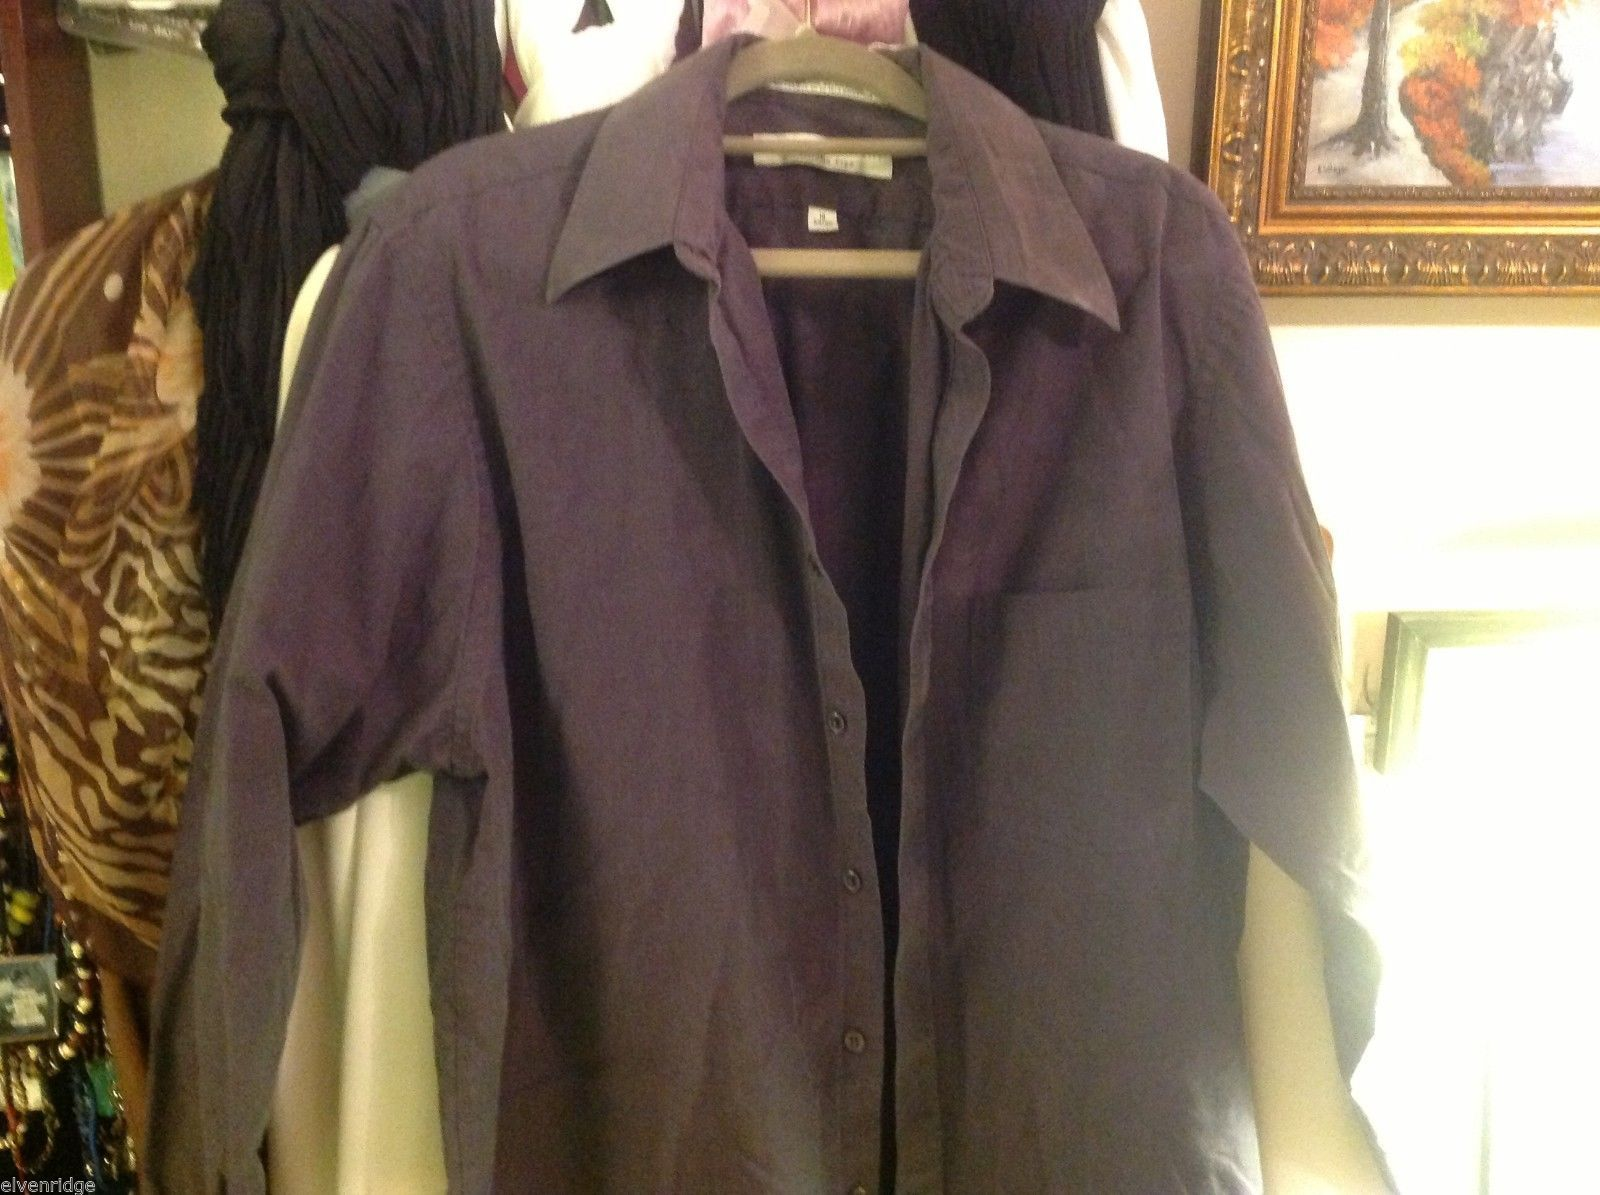 geoffrey beene shirt size 16 34/35  deep purple w greenish sheen wrinkle free